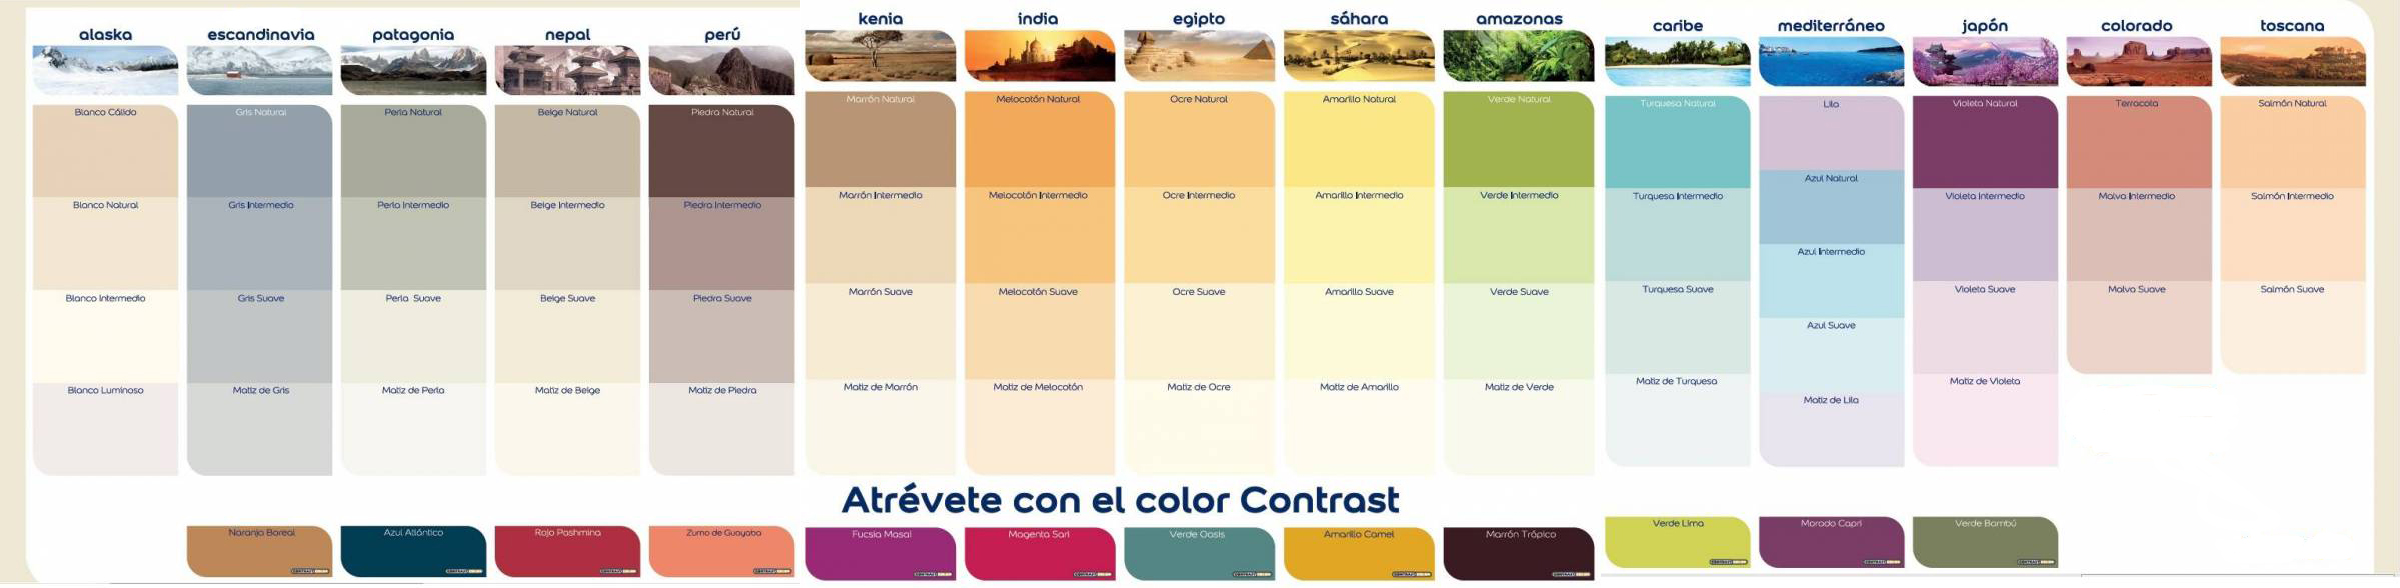 Colores pinturas pintura latex interior lavable en for Pintura color piedra